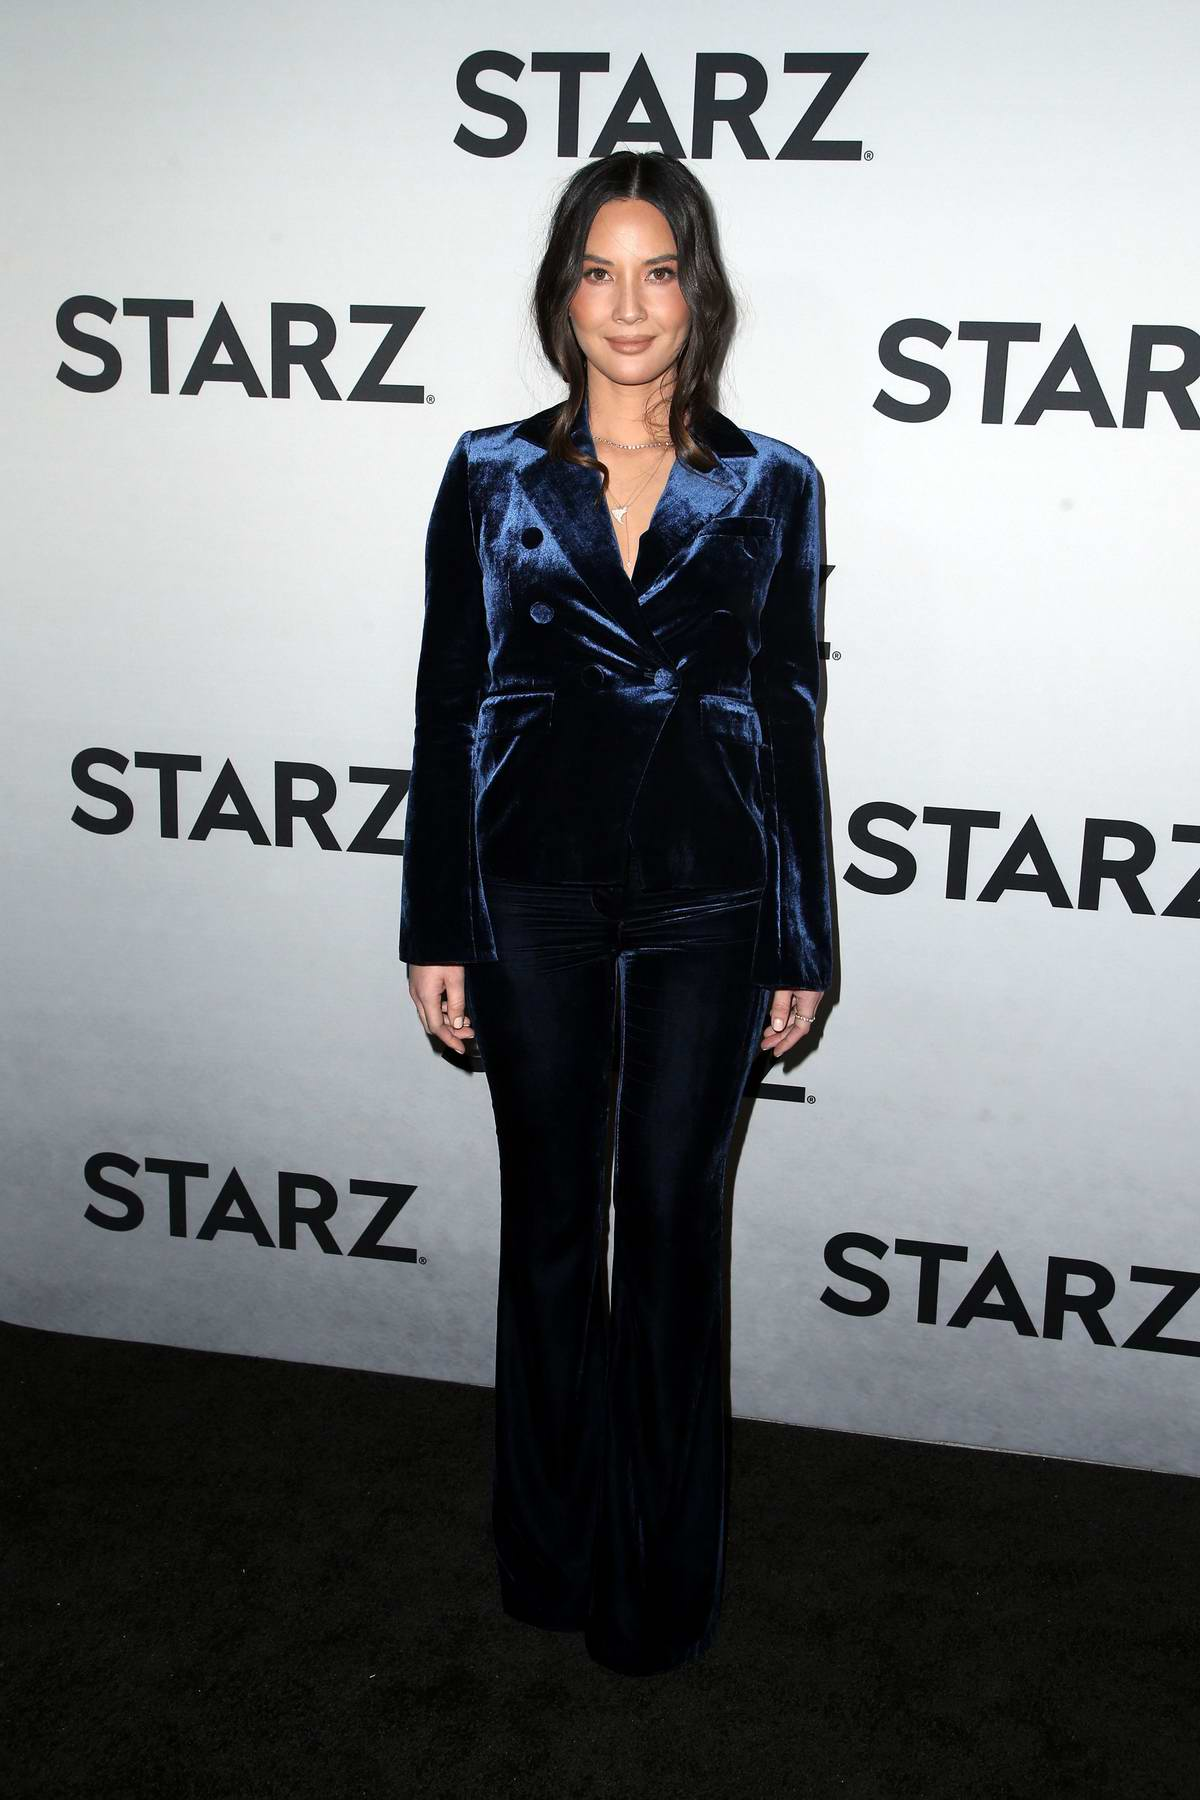 Olivia Munn attends the STARZ TCA Red Carpet Event at 71Above in Los Angeles